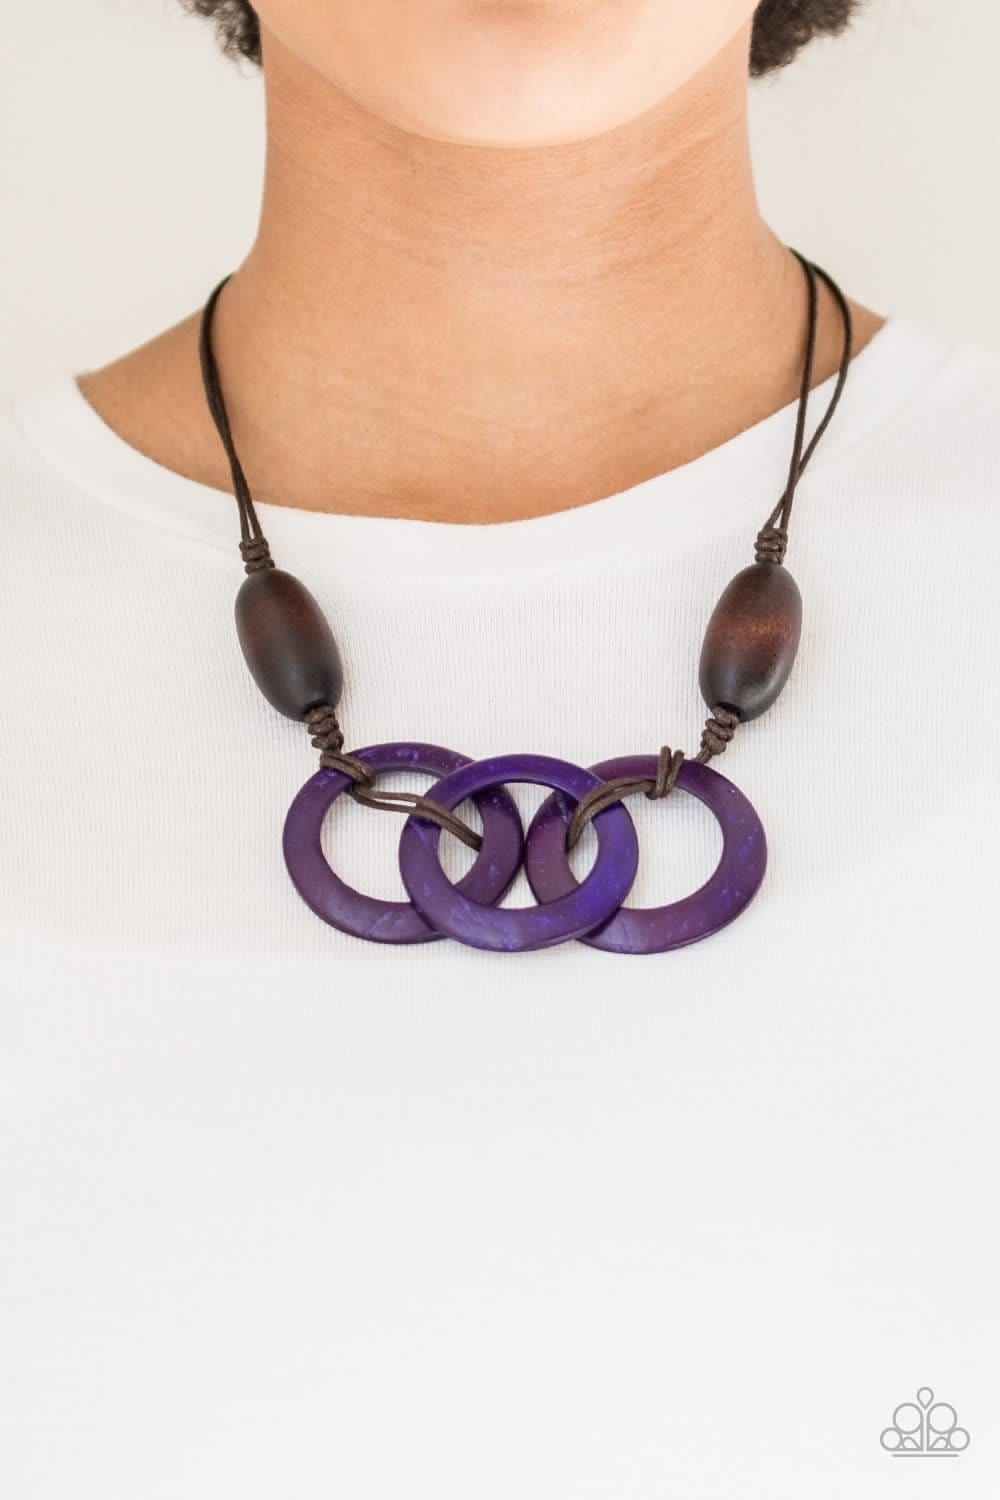 Bahama Drama - Purple: Paparazzi Accessories - Jewels N' Thingz Boutique